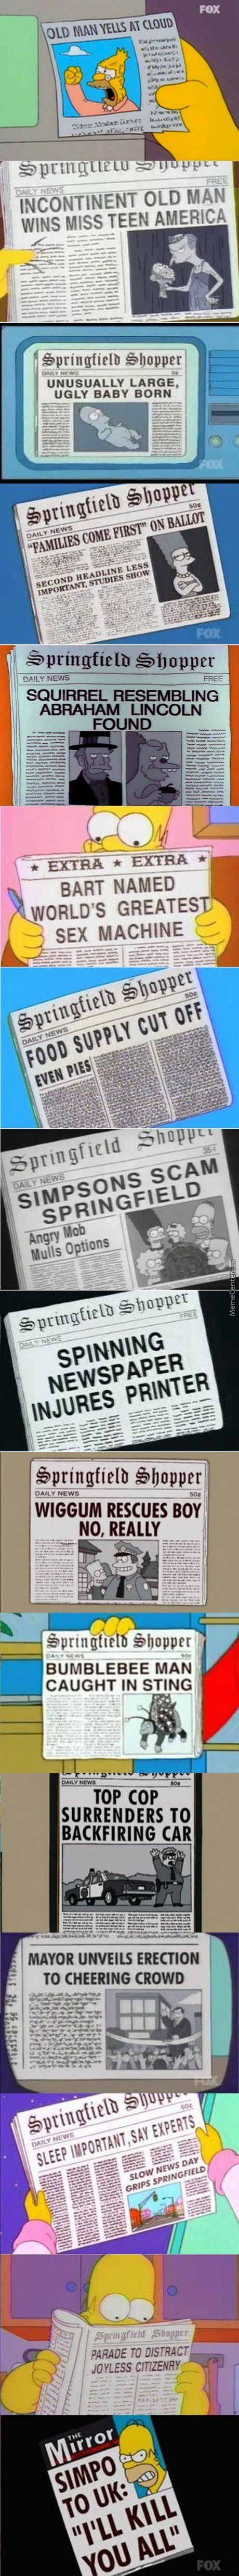 Just Some Simpsons Newspapers